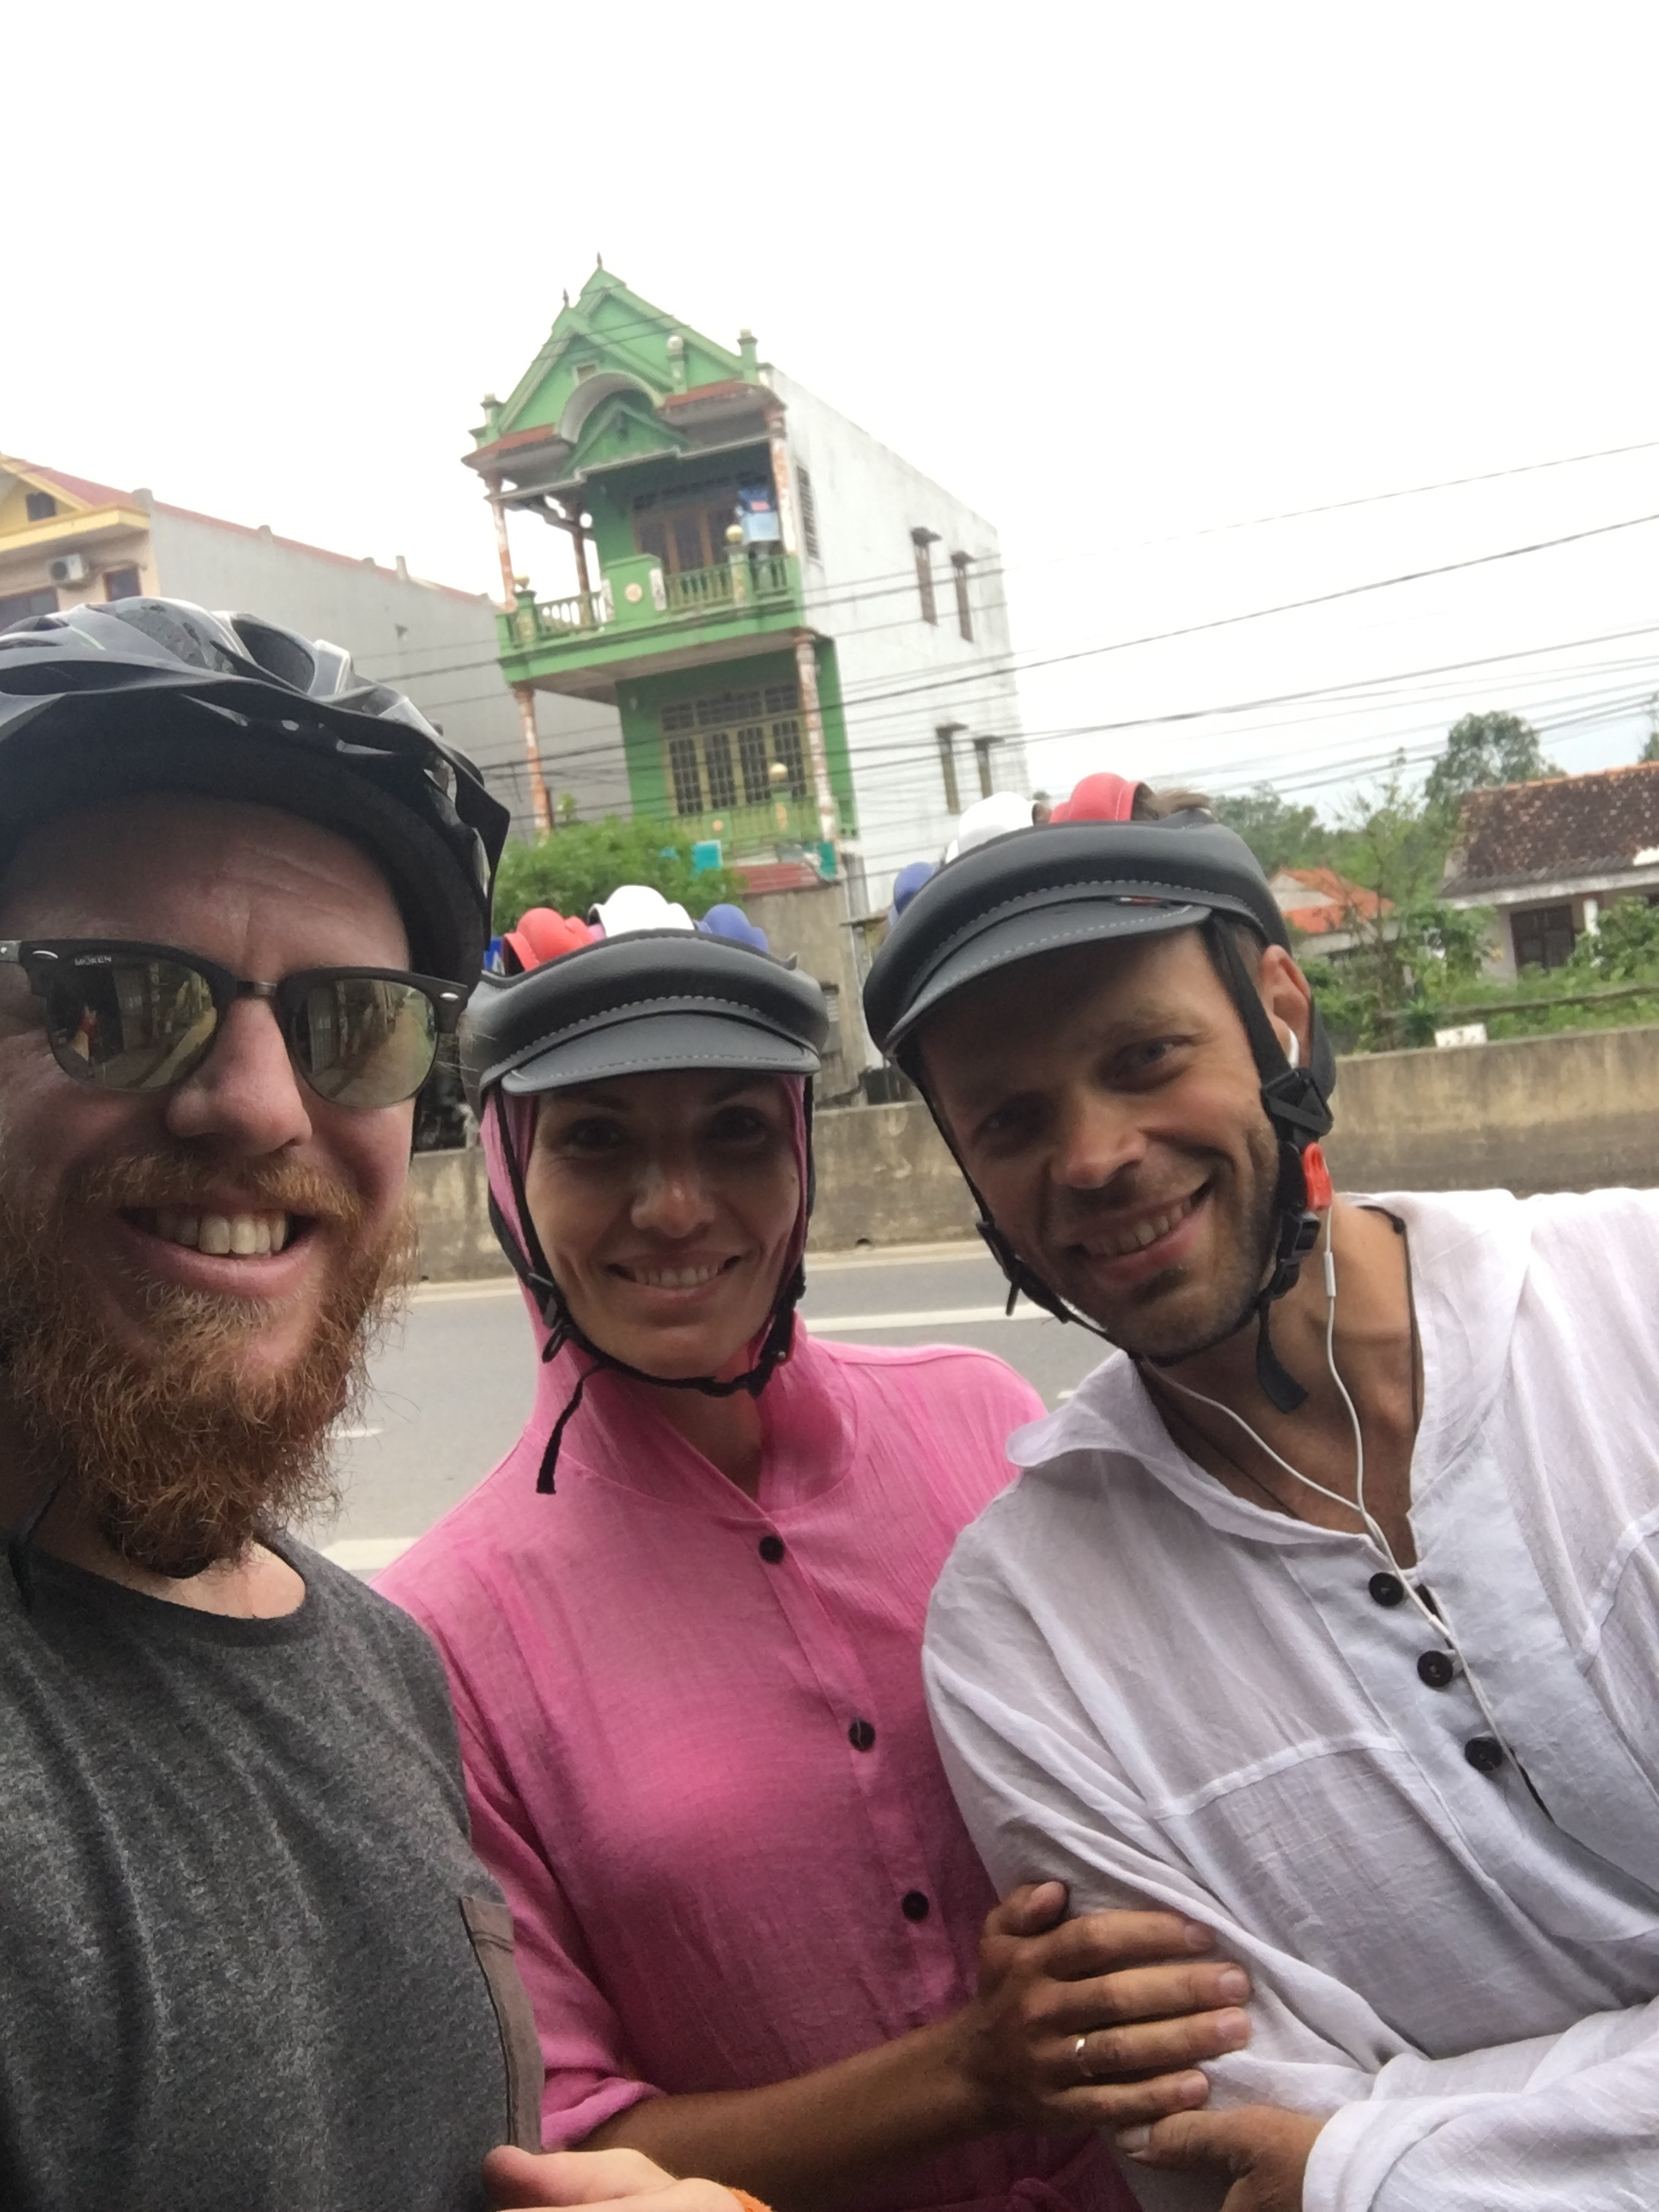 Meeting and chatting with other cyclists from Russia